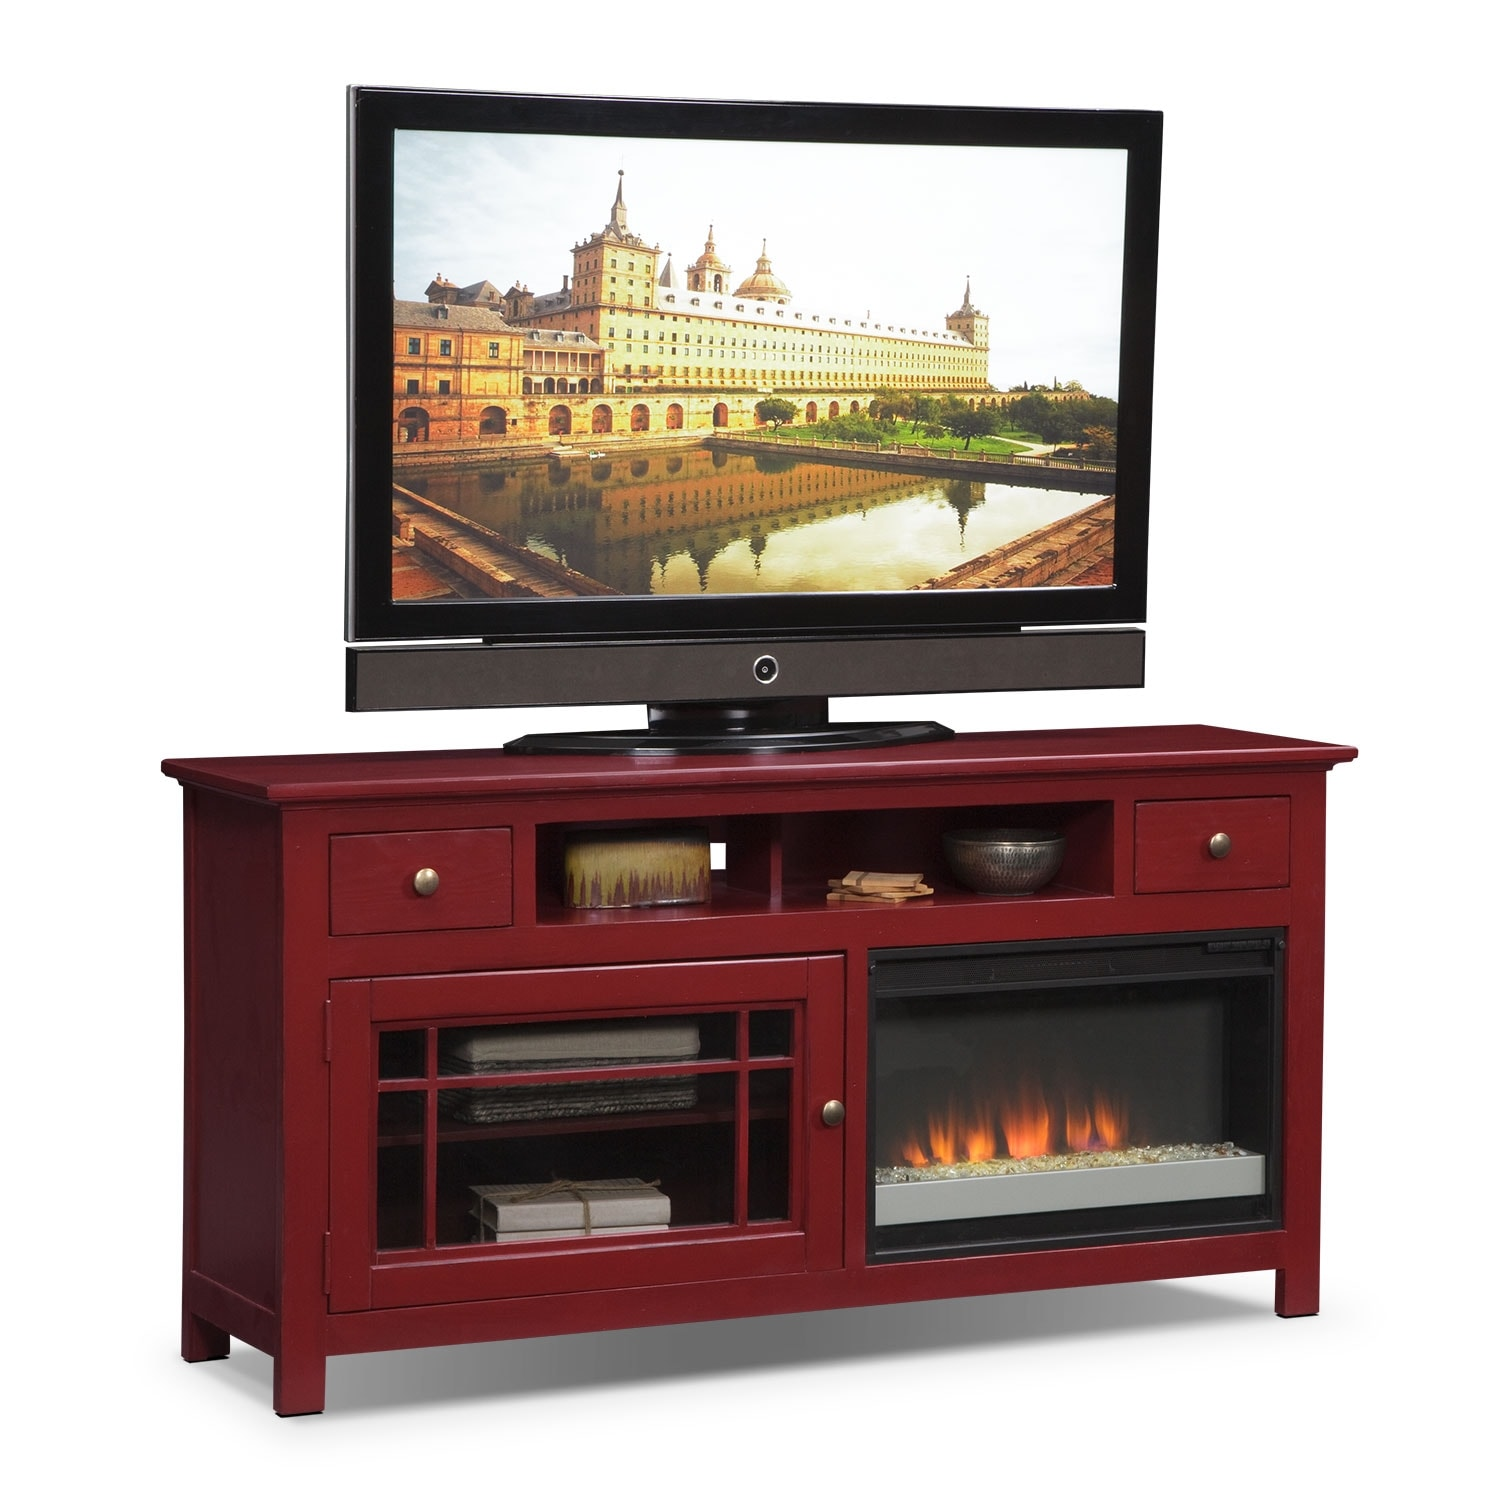 "Merrick 64"" Fireplace TV Stand with Contemporary Insert - Red"